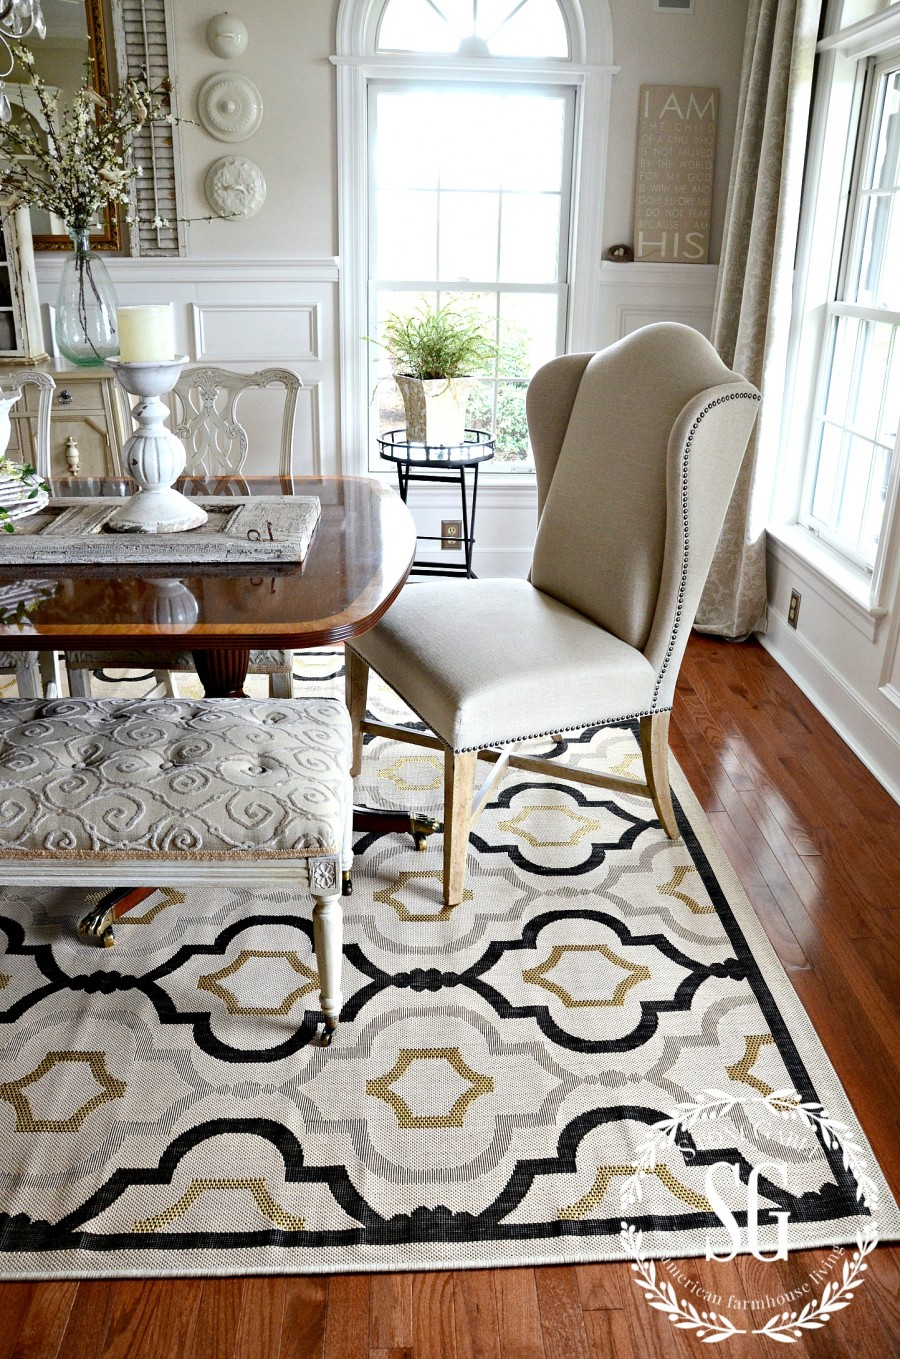 5 RULES FOR CHOOSING THE PERFECT DINING ROOM RUG-design and color-stonegableblog.com